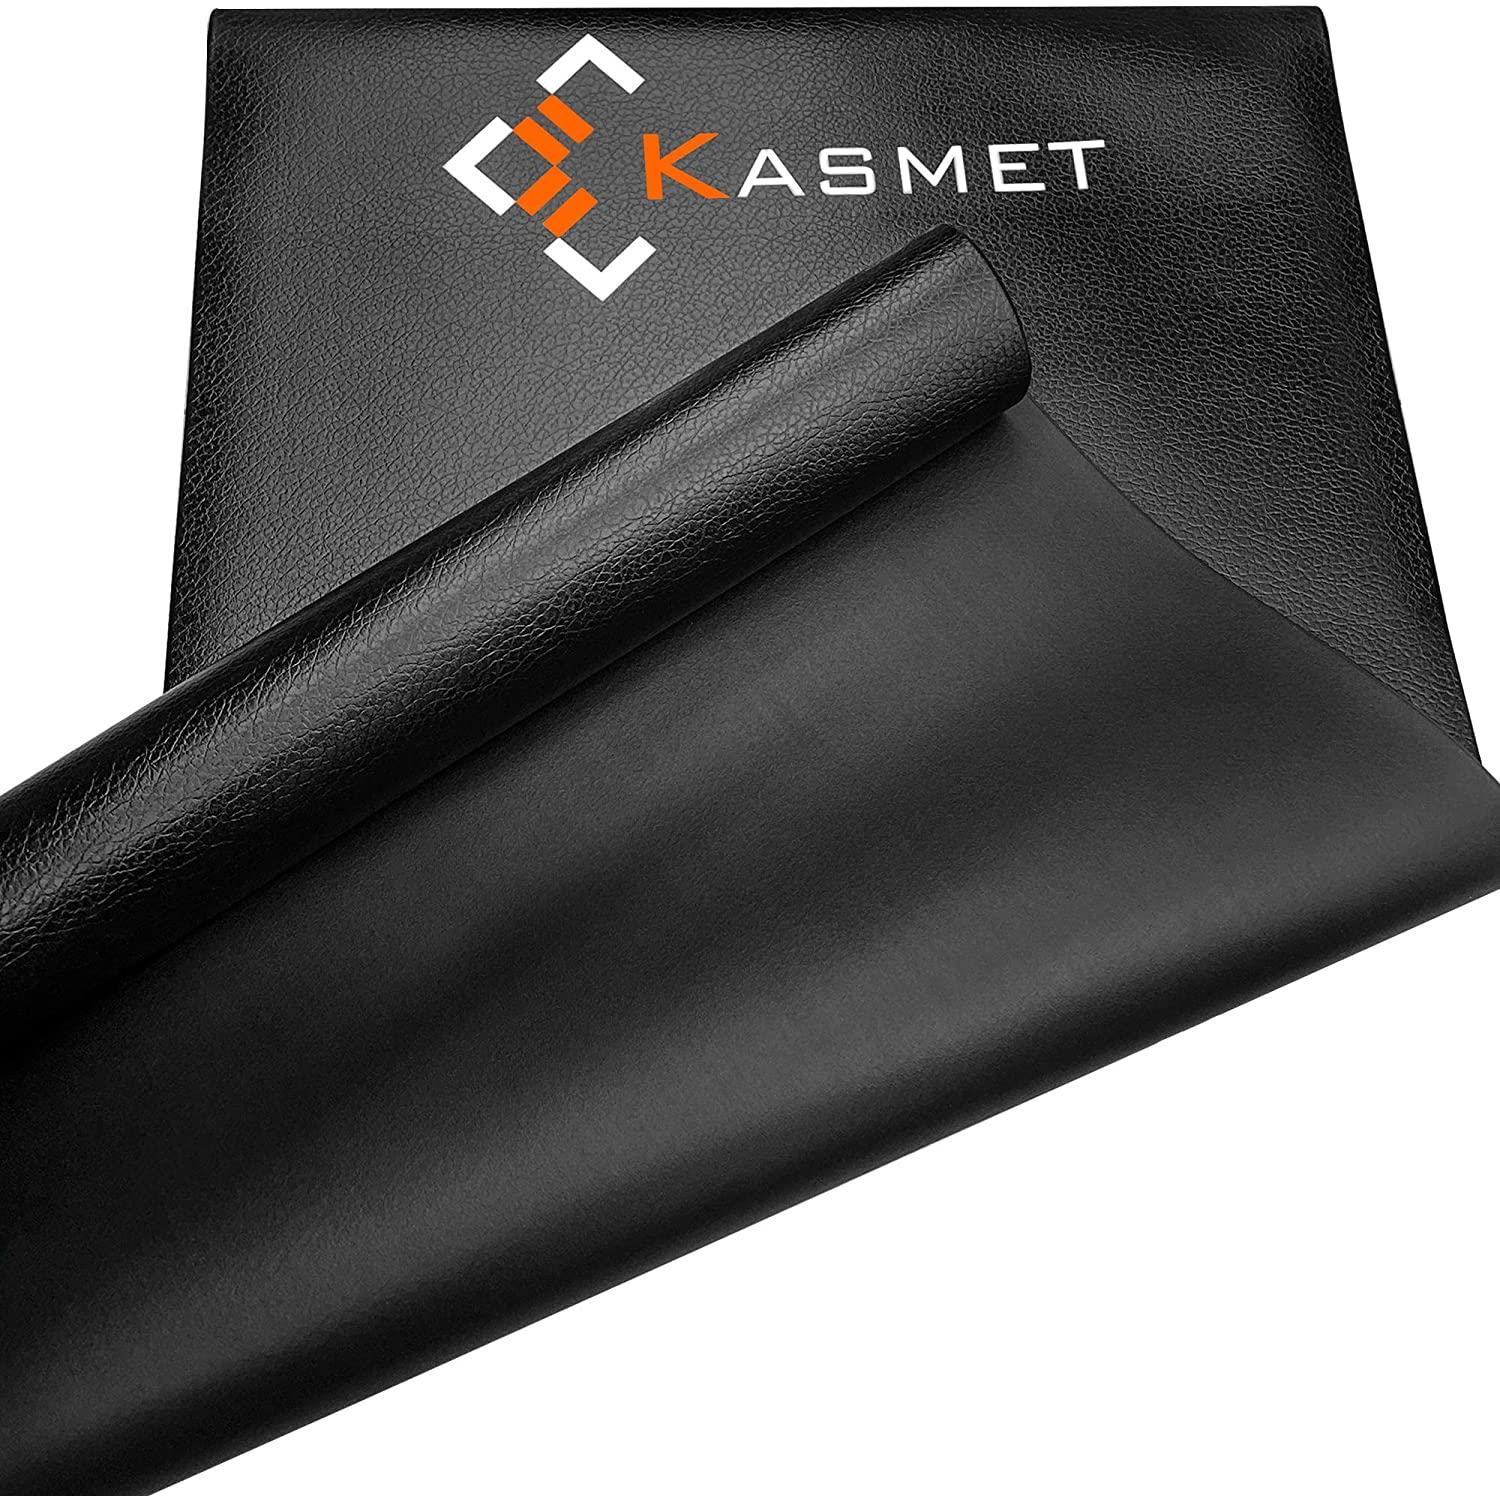 KASMET Home Gym Equipment Non-Slip Mat for Exercise Bike, Treadmill, Weight Bench, Rowing Machine, Indoor Cycling, Heavy Duty PVC Floor Protection Mats-Yoga, Pilates